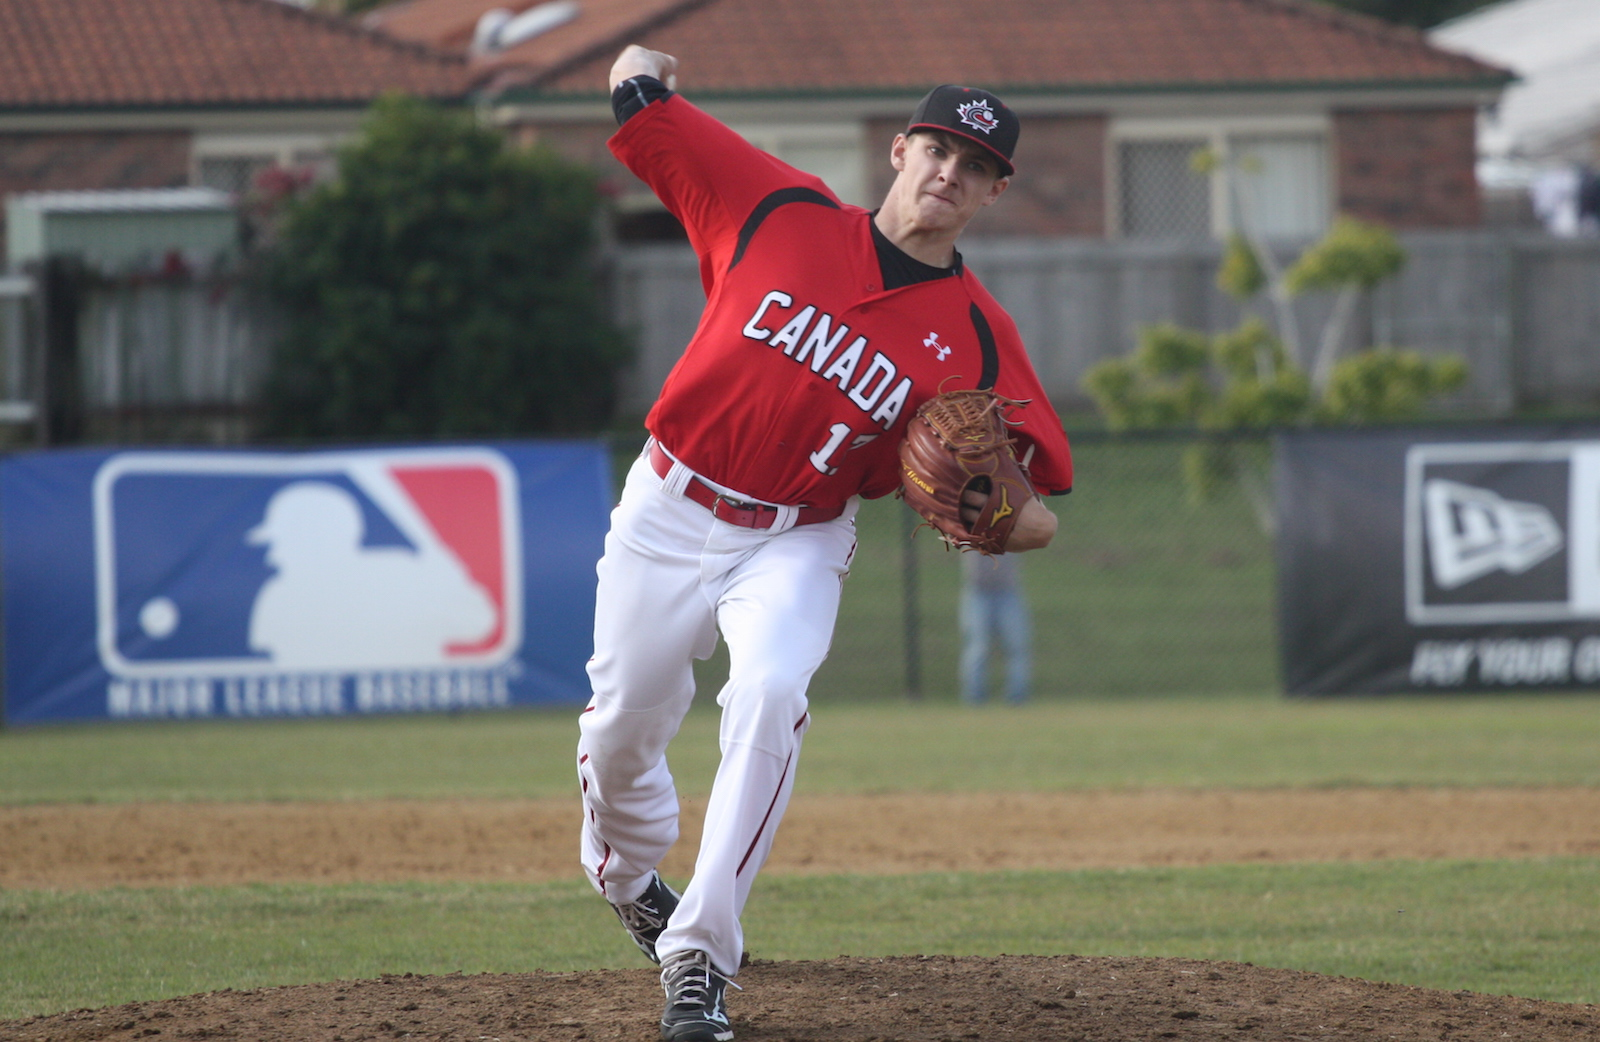 U-18 Pre World Cup: Canada swept by Aussies in doubleheader